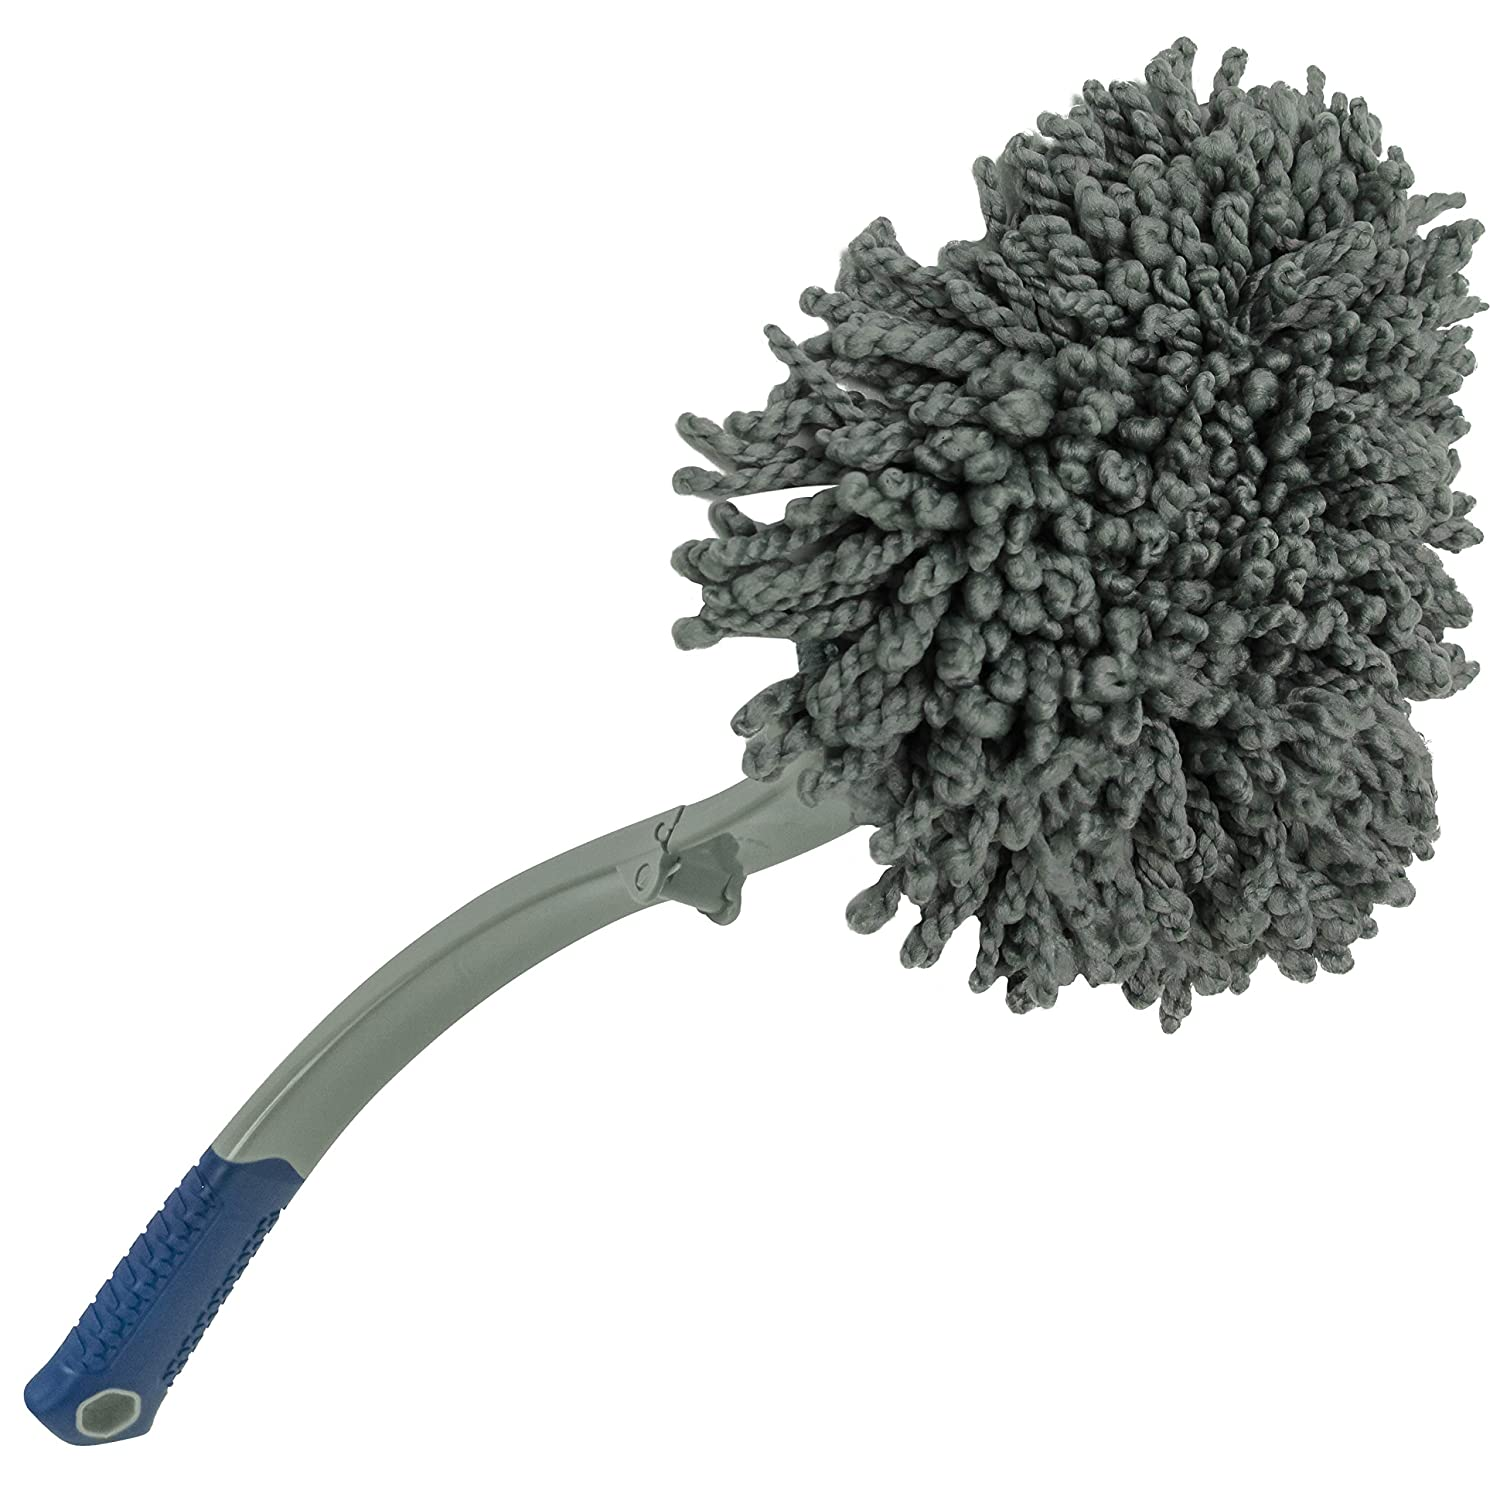 939301 Dusting Wand for Auto and Home Interior Includes Collapsible Handle and 2 Chenille Pads S/&T INC